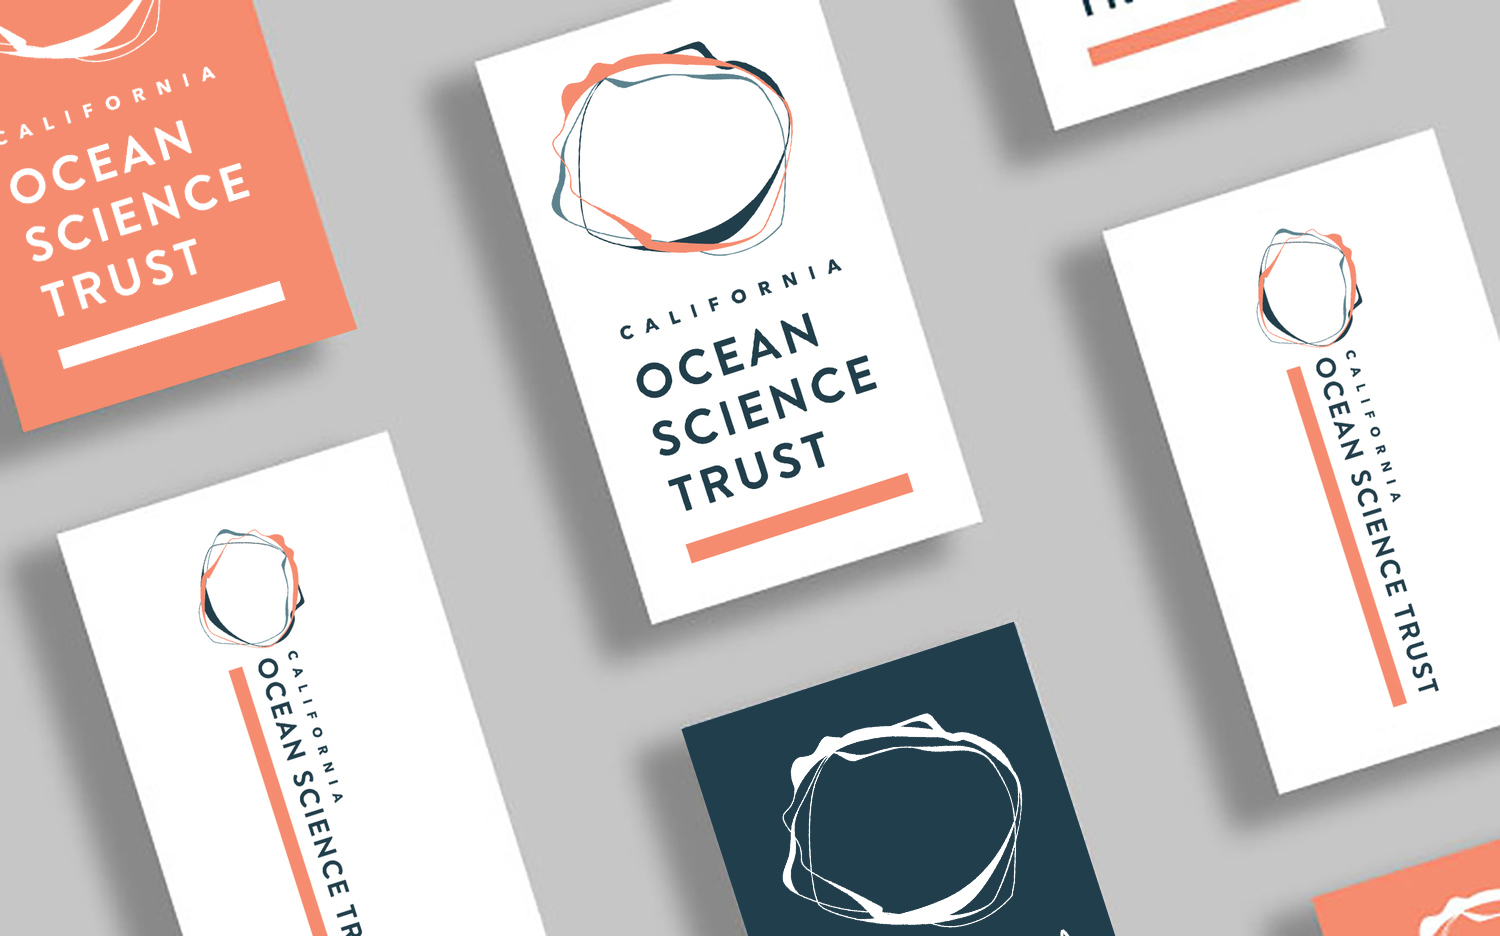 CALIFORNIA OCEANS SCIENCE TRUST